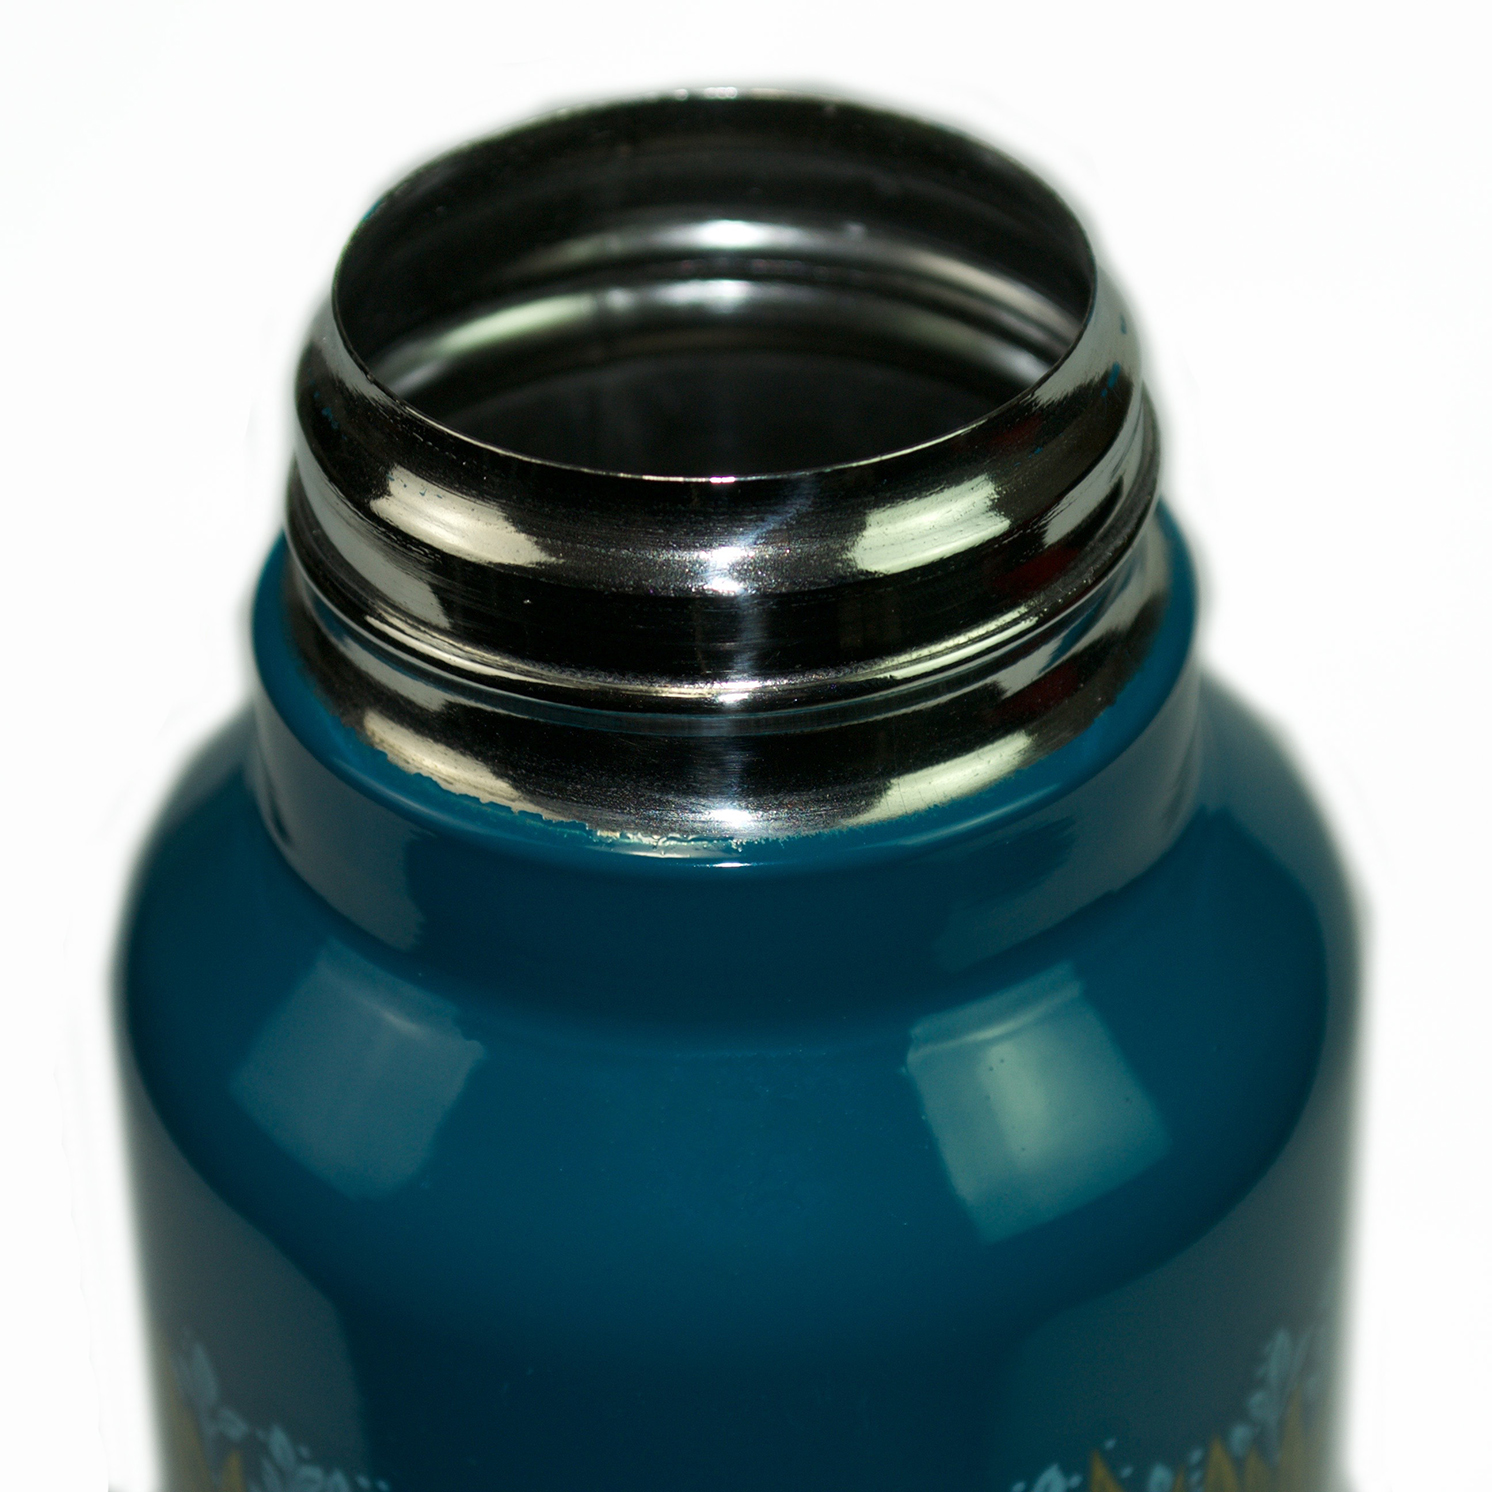 Morris & Co – Turquoise Blue Marigold Print Stainless Steel Water Bottle